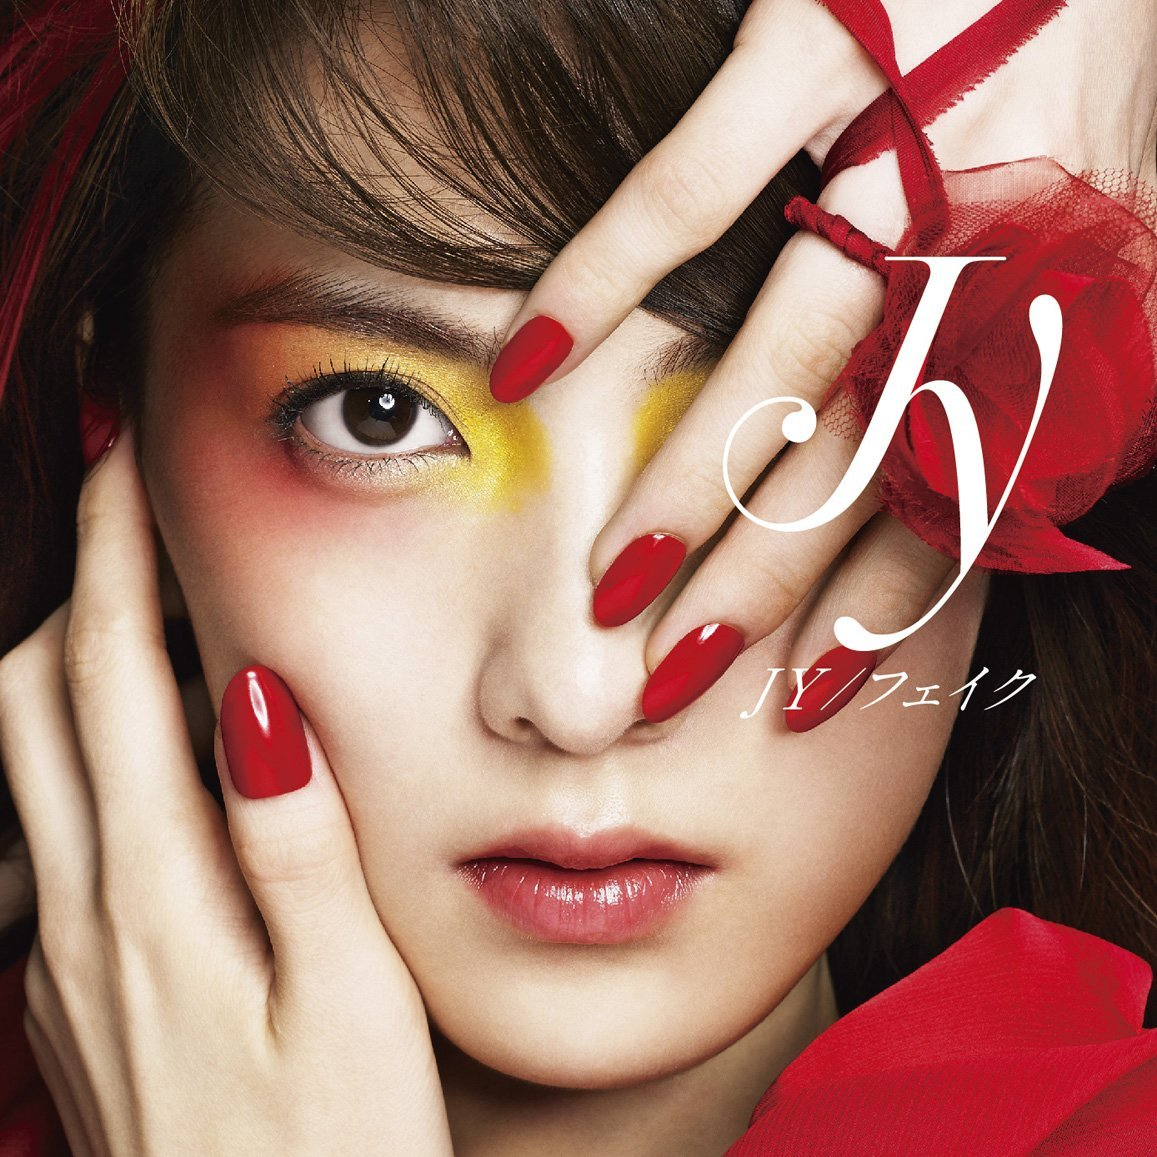 20180616.0212.6 JY (Kang Ji Young) - Fake (DVD) (JPOP.ru) cover 1.jpg